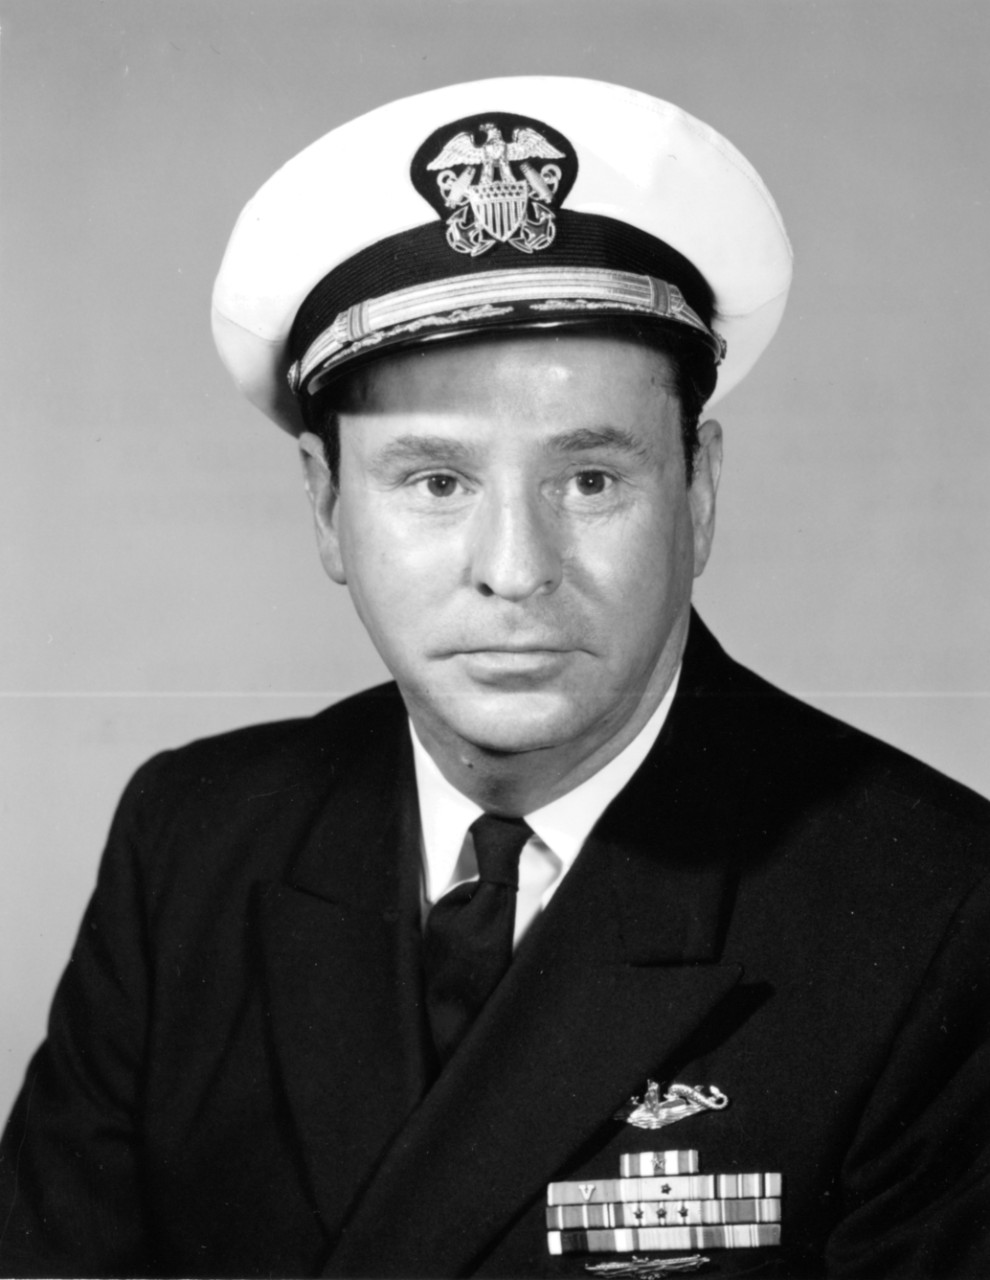 Lt. Cmdr. Stephen L. Johnson graduated from the United States Naval Academy in 1939 and served in battleship Oklahoma (BB-37) until June 1940. He went to submarine school shortly before the war began and served in Shad as gunnery officer before serving as commanding officer of S-32 (SS-137) and executive officer of Tunny (SS-282). (Naval History and Heritage Command Photograph, Officer Biography Files).